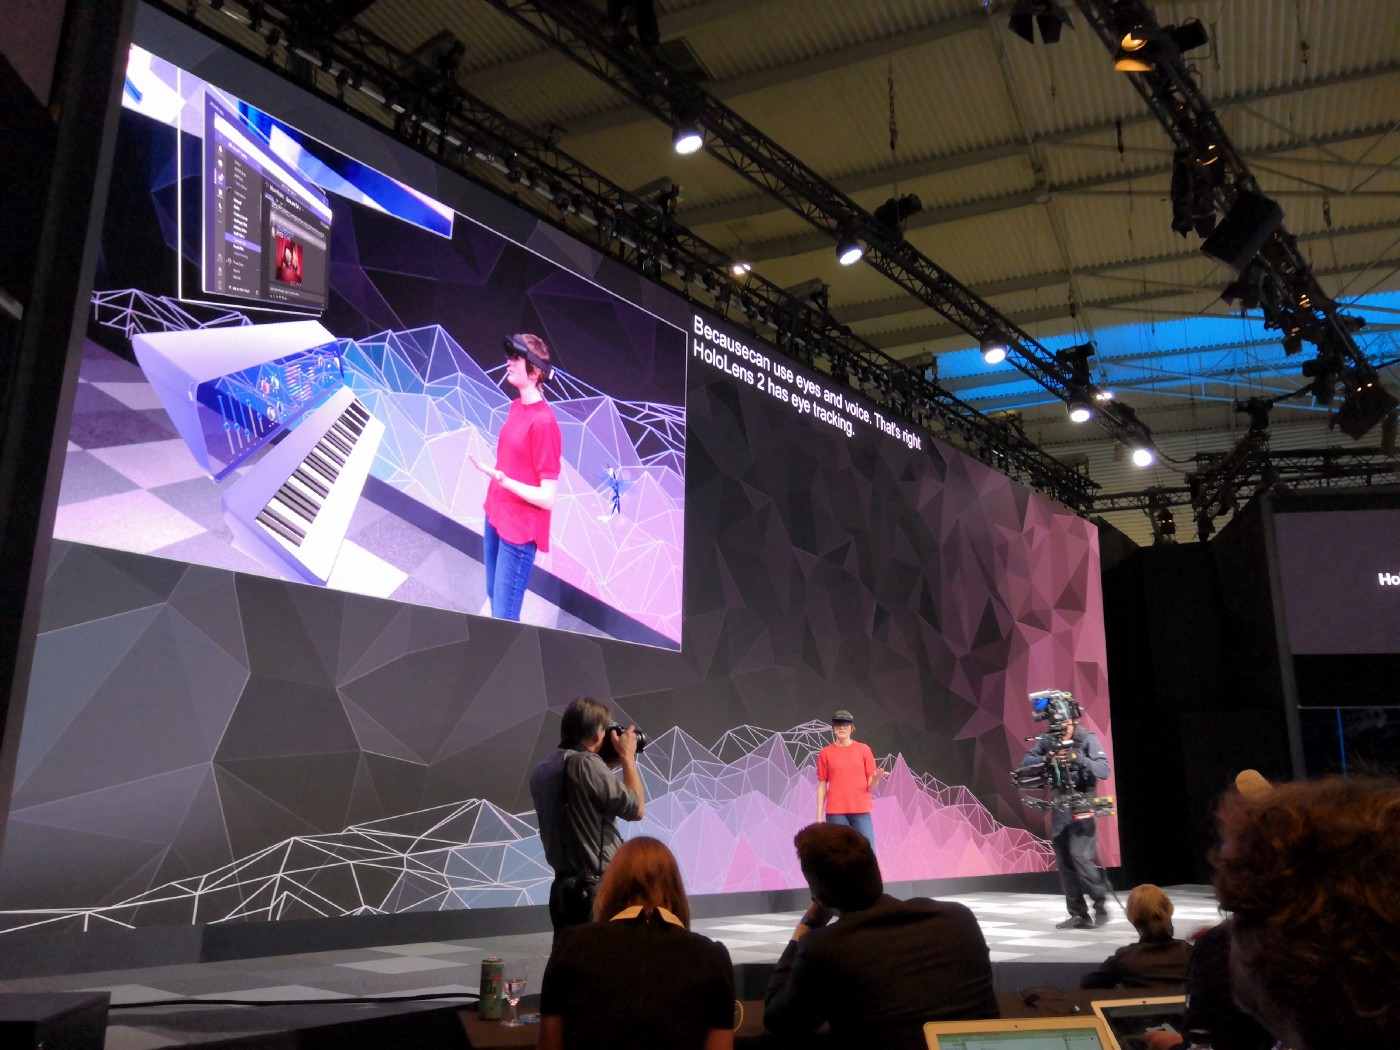 This is What the Future of Mixed Reality Looks Like